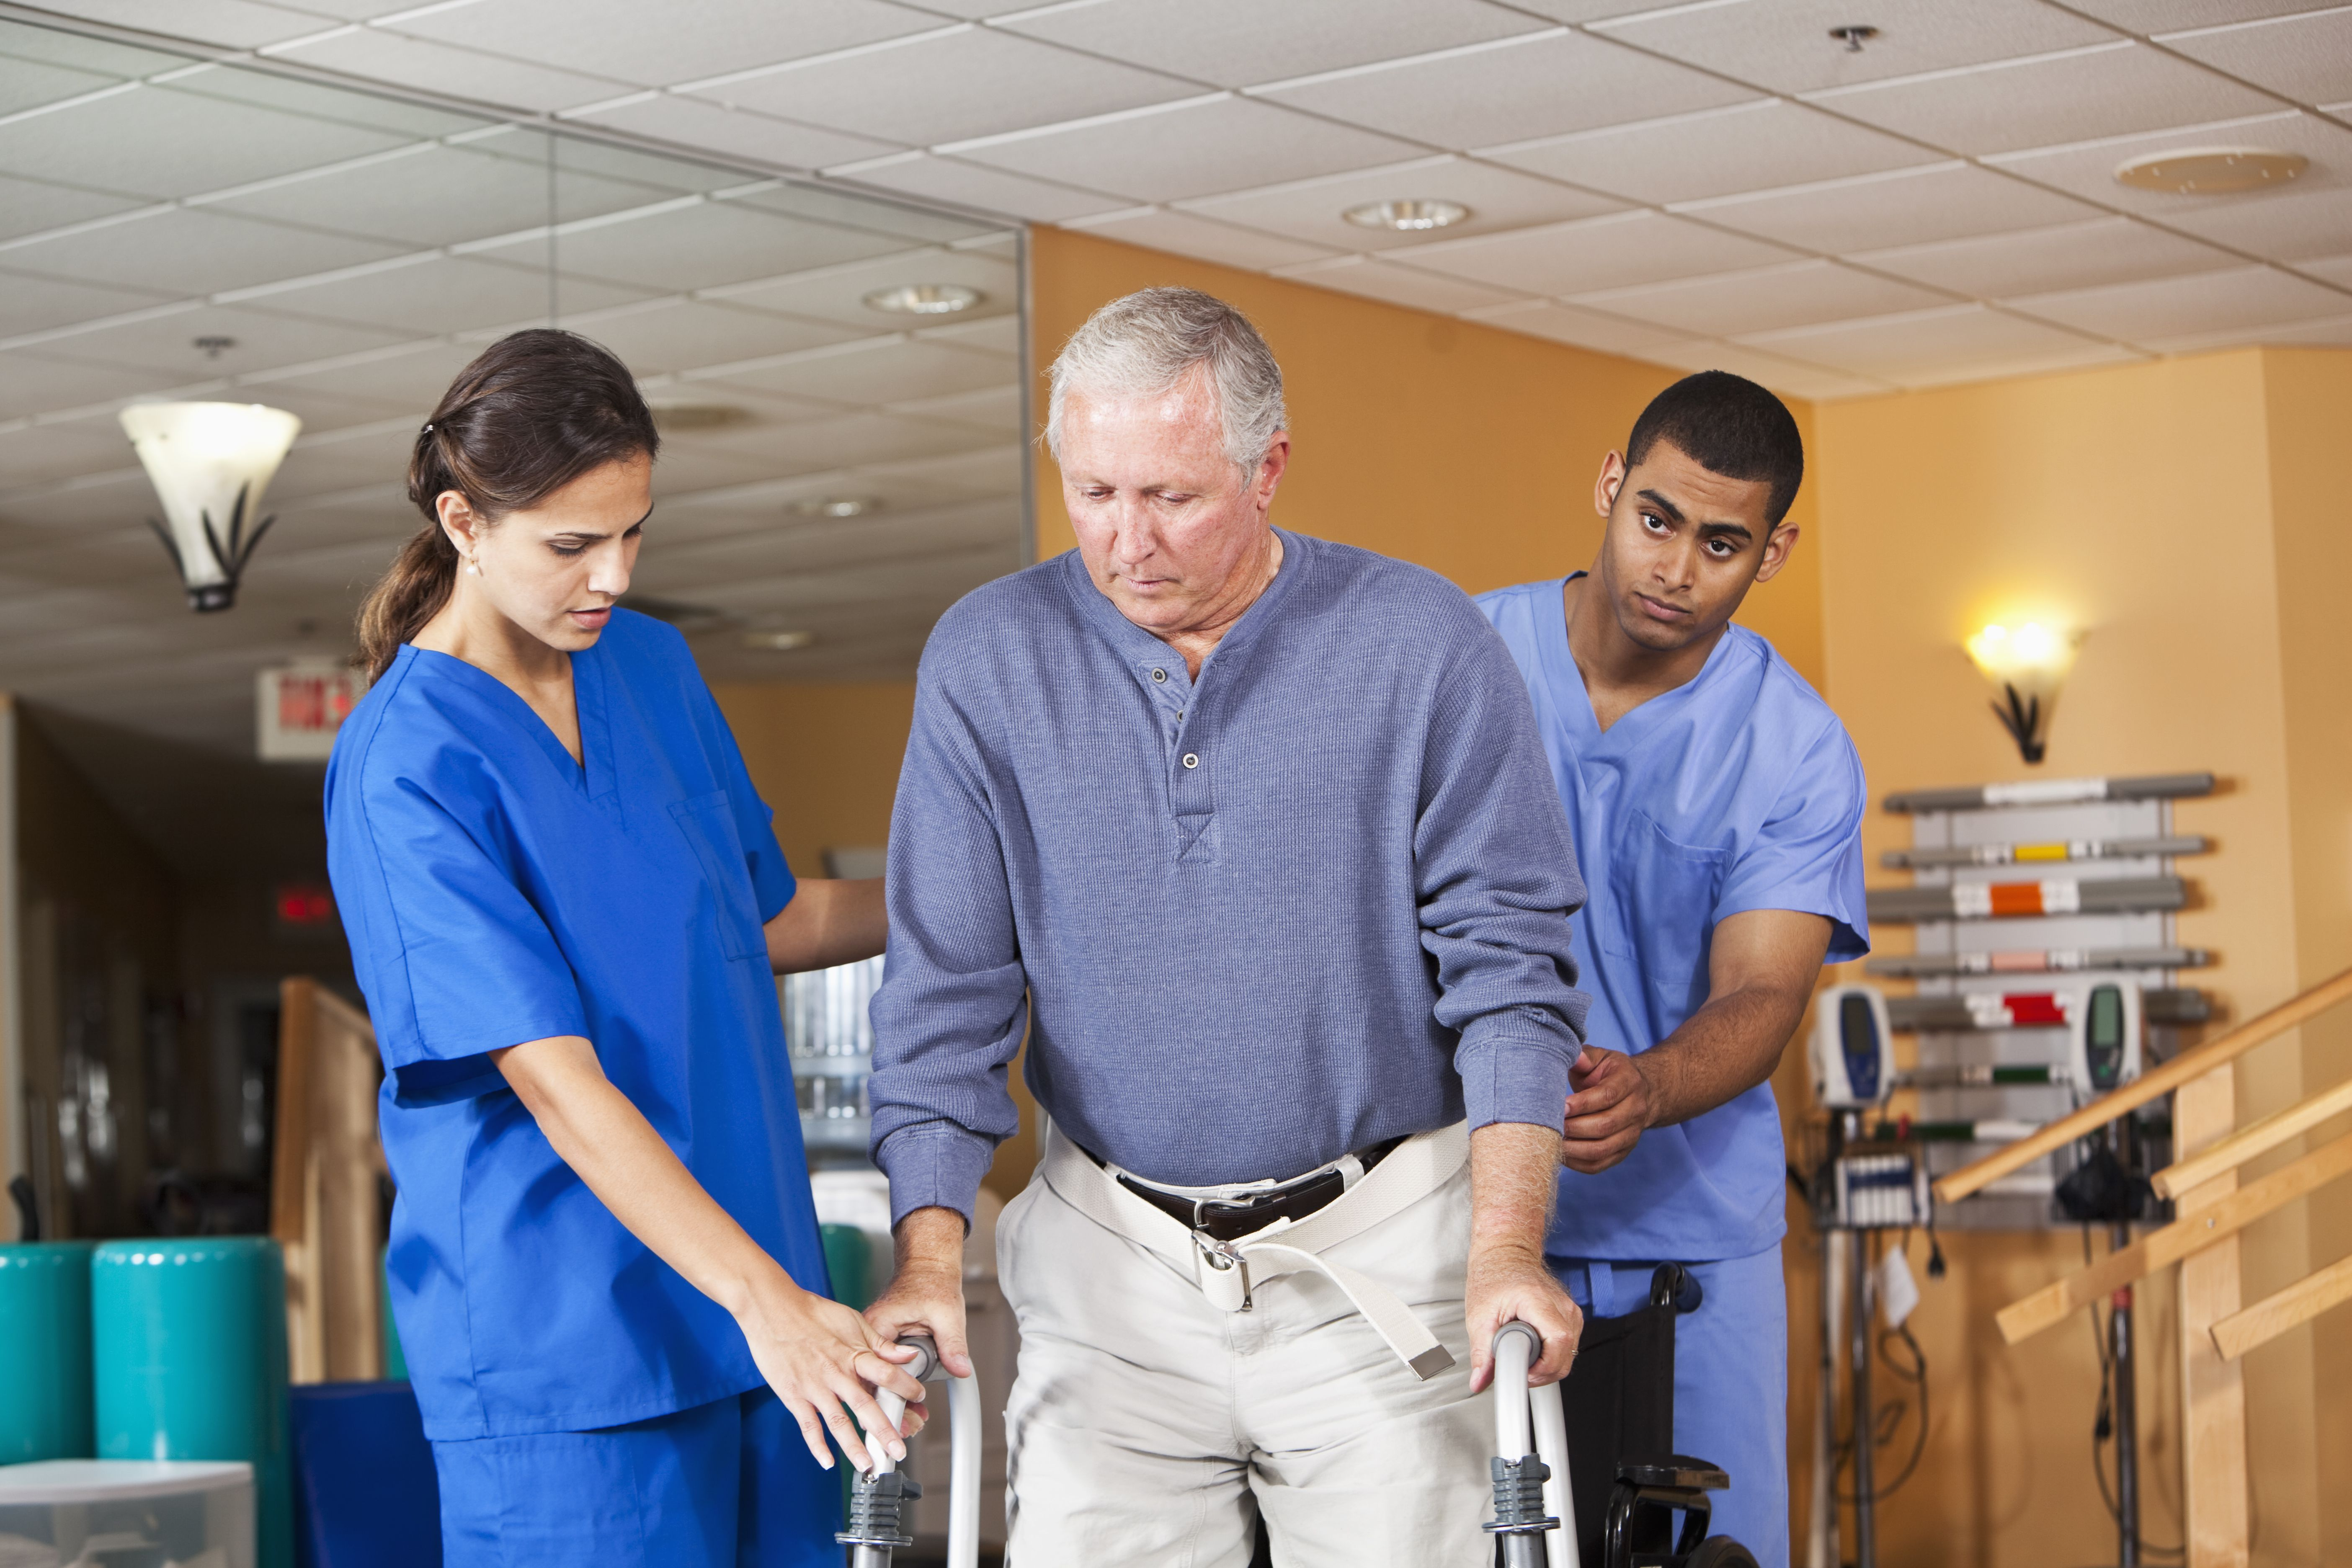 Occupational Therapy Aide with OT and Patient